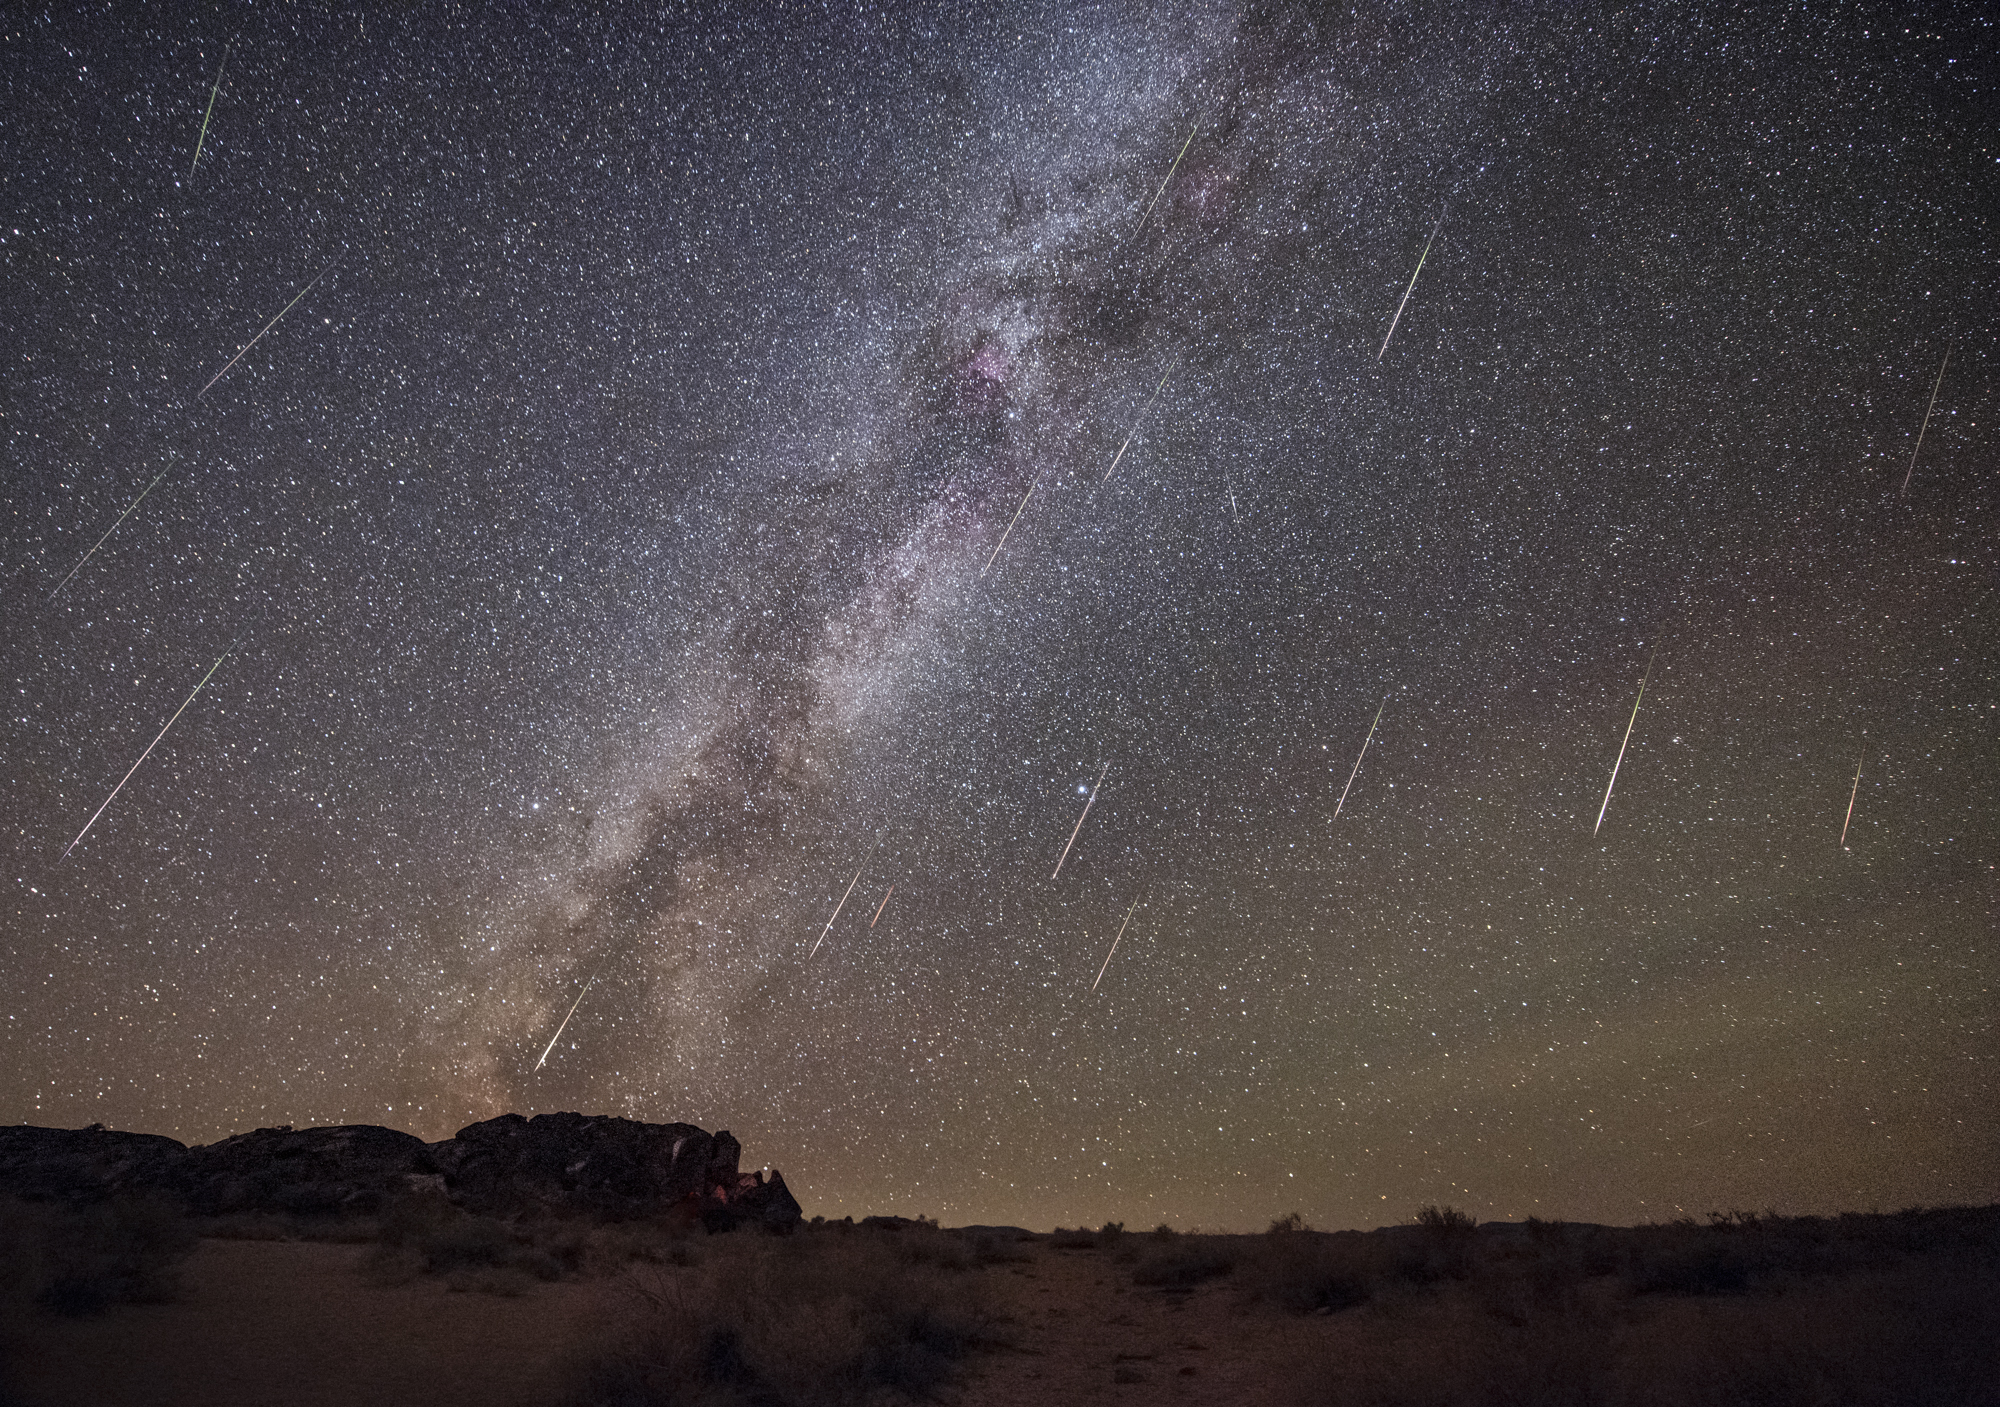 2020 California Nightscapes: Perseid Meteor Shower & Summer Milky Way - Co-taught with Babak Tafreshi, National Geographic / TWANFour Day / Four Night Workshop, $1795.00One-Day Bootcamp $395.00Wednesday, August 12 – Sunday, August 16, 2020Mammoth Lakes Area, California16 Students Maximum